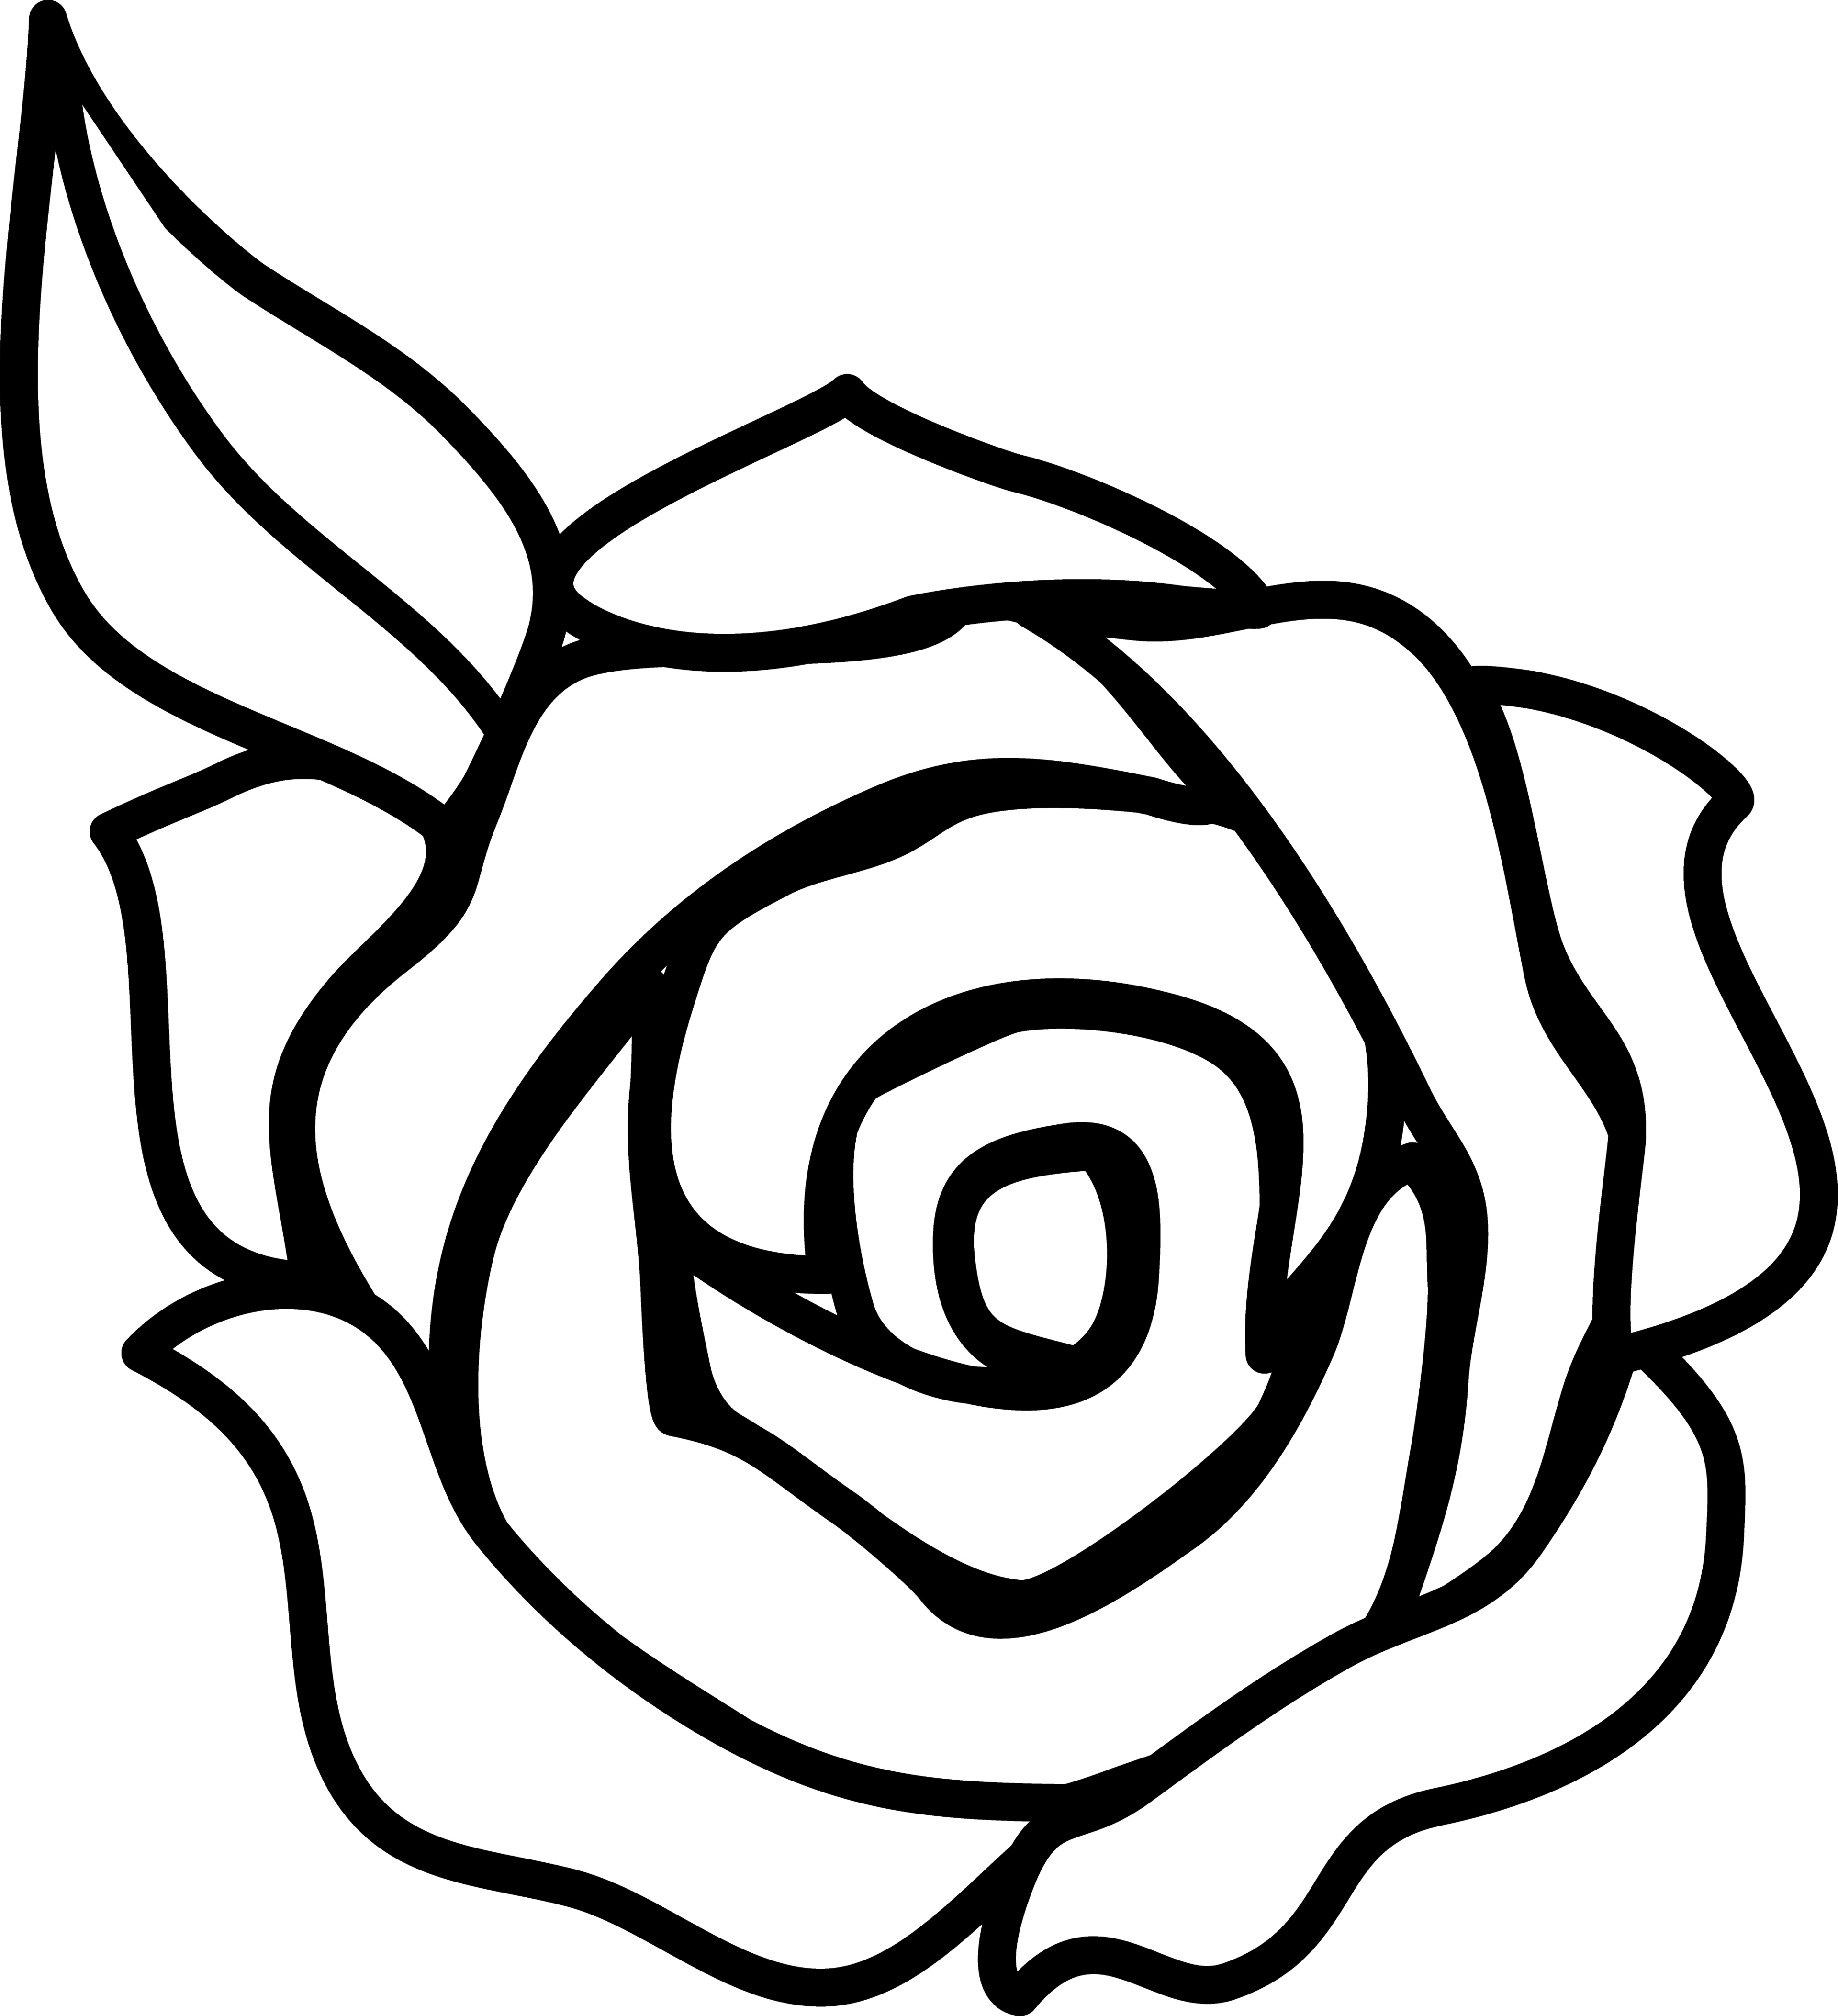 Rose flowers clipart hd.